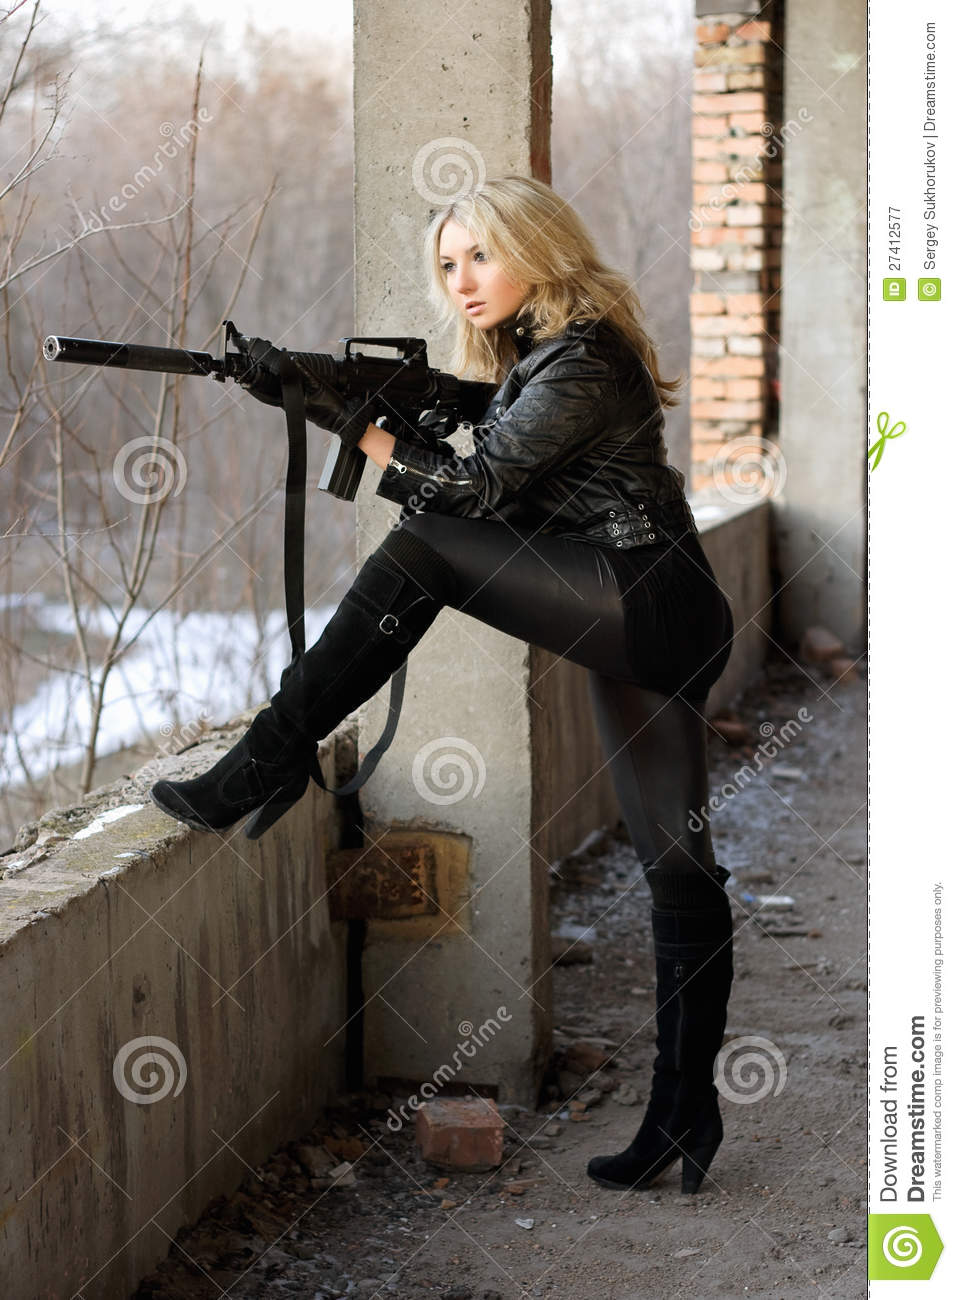 Blond Girl With Submachine Gun Royalty Free Stock